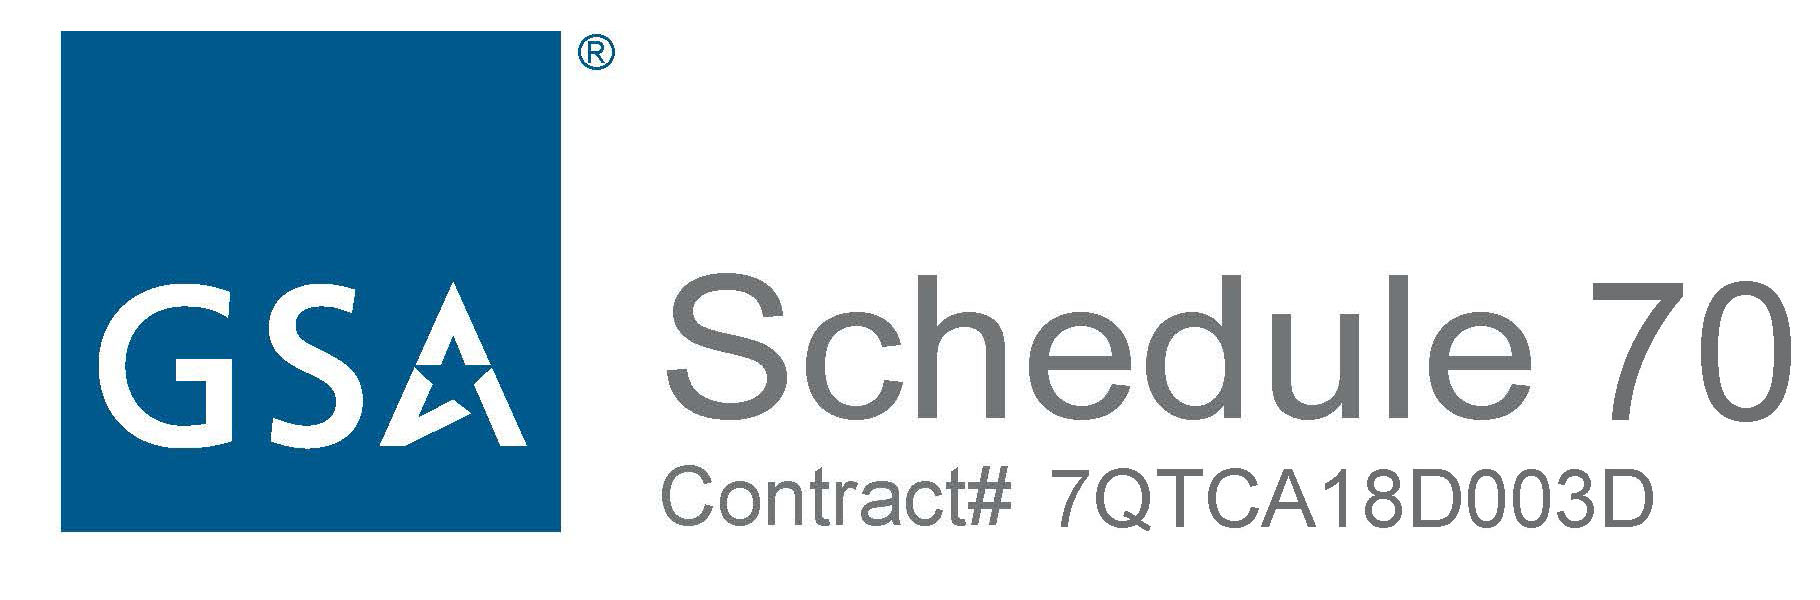 Schedule-70-StarMark_Color_w_Contract_Arial-2020-2